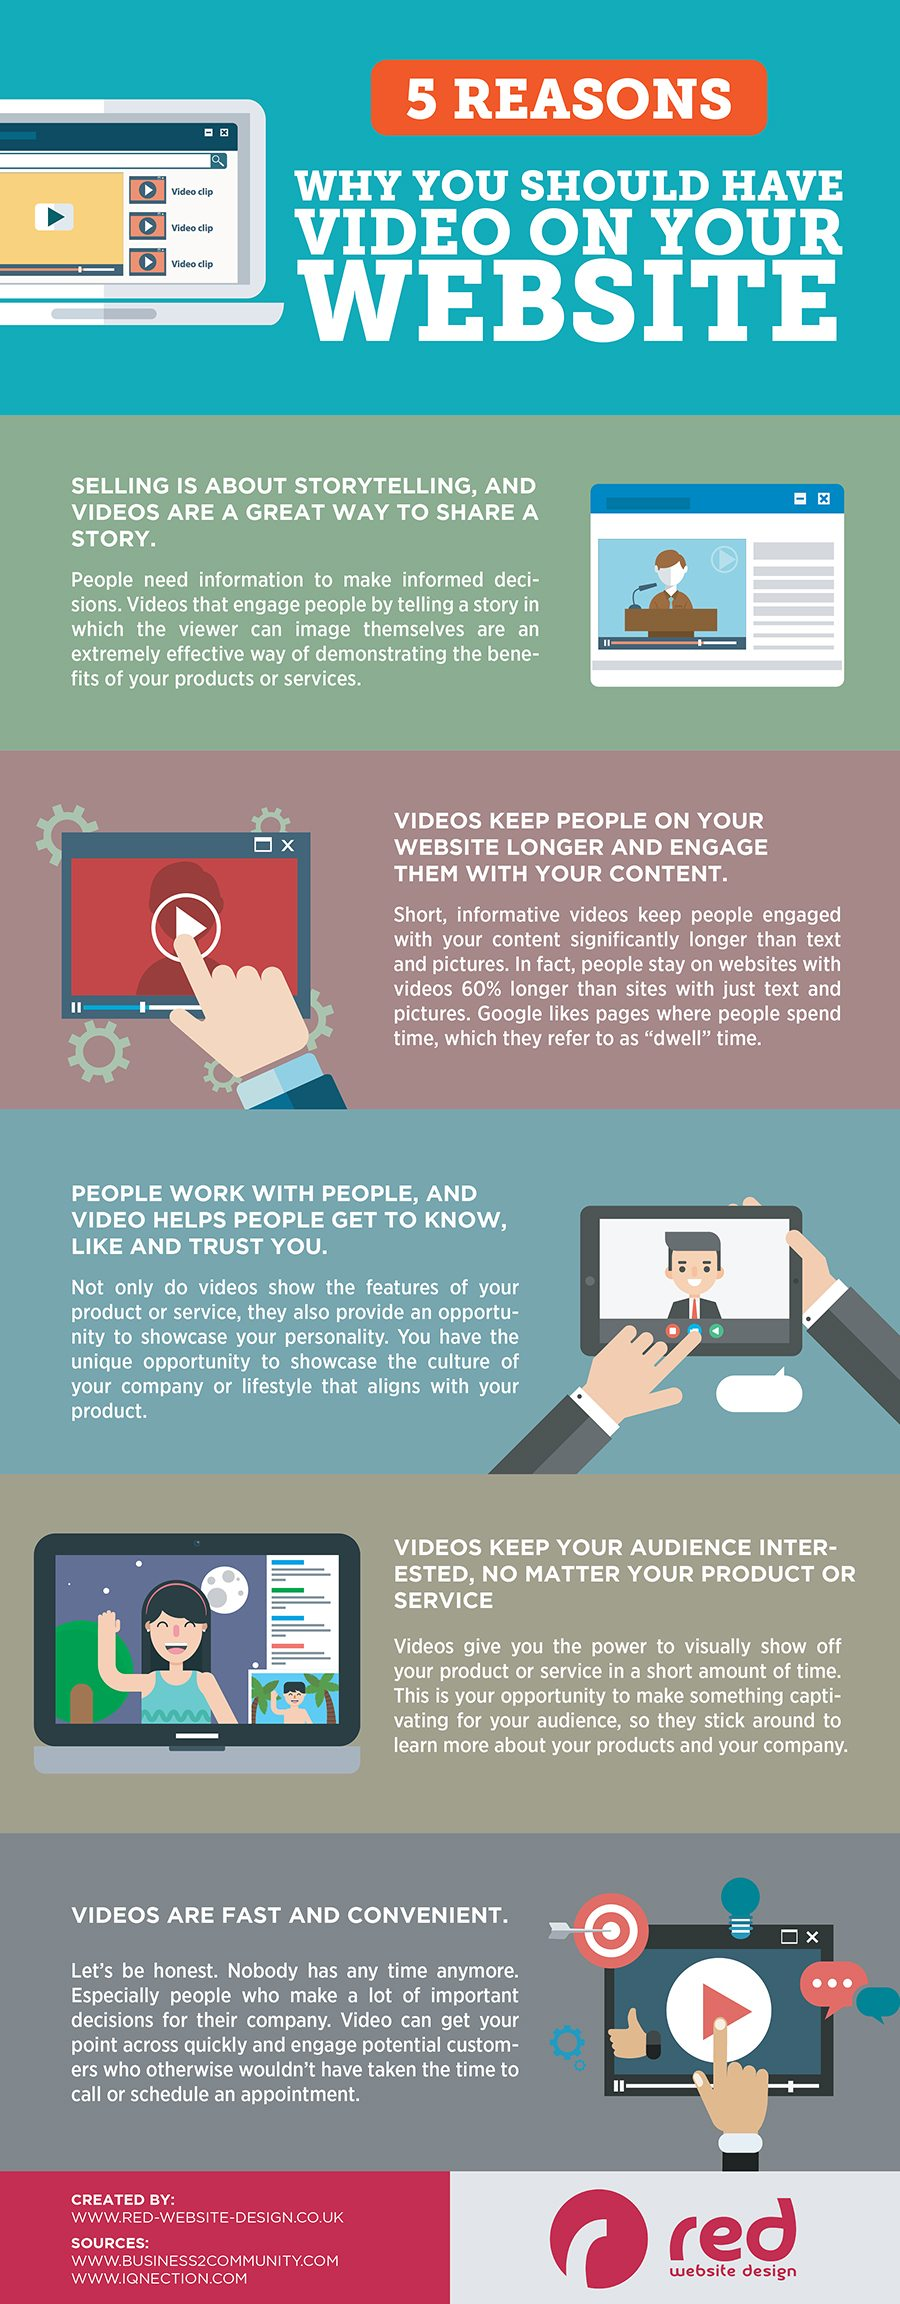 5 Reasons You Should Use Video on Your Website [Infographic] | Social Media Today